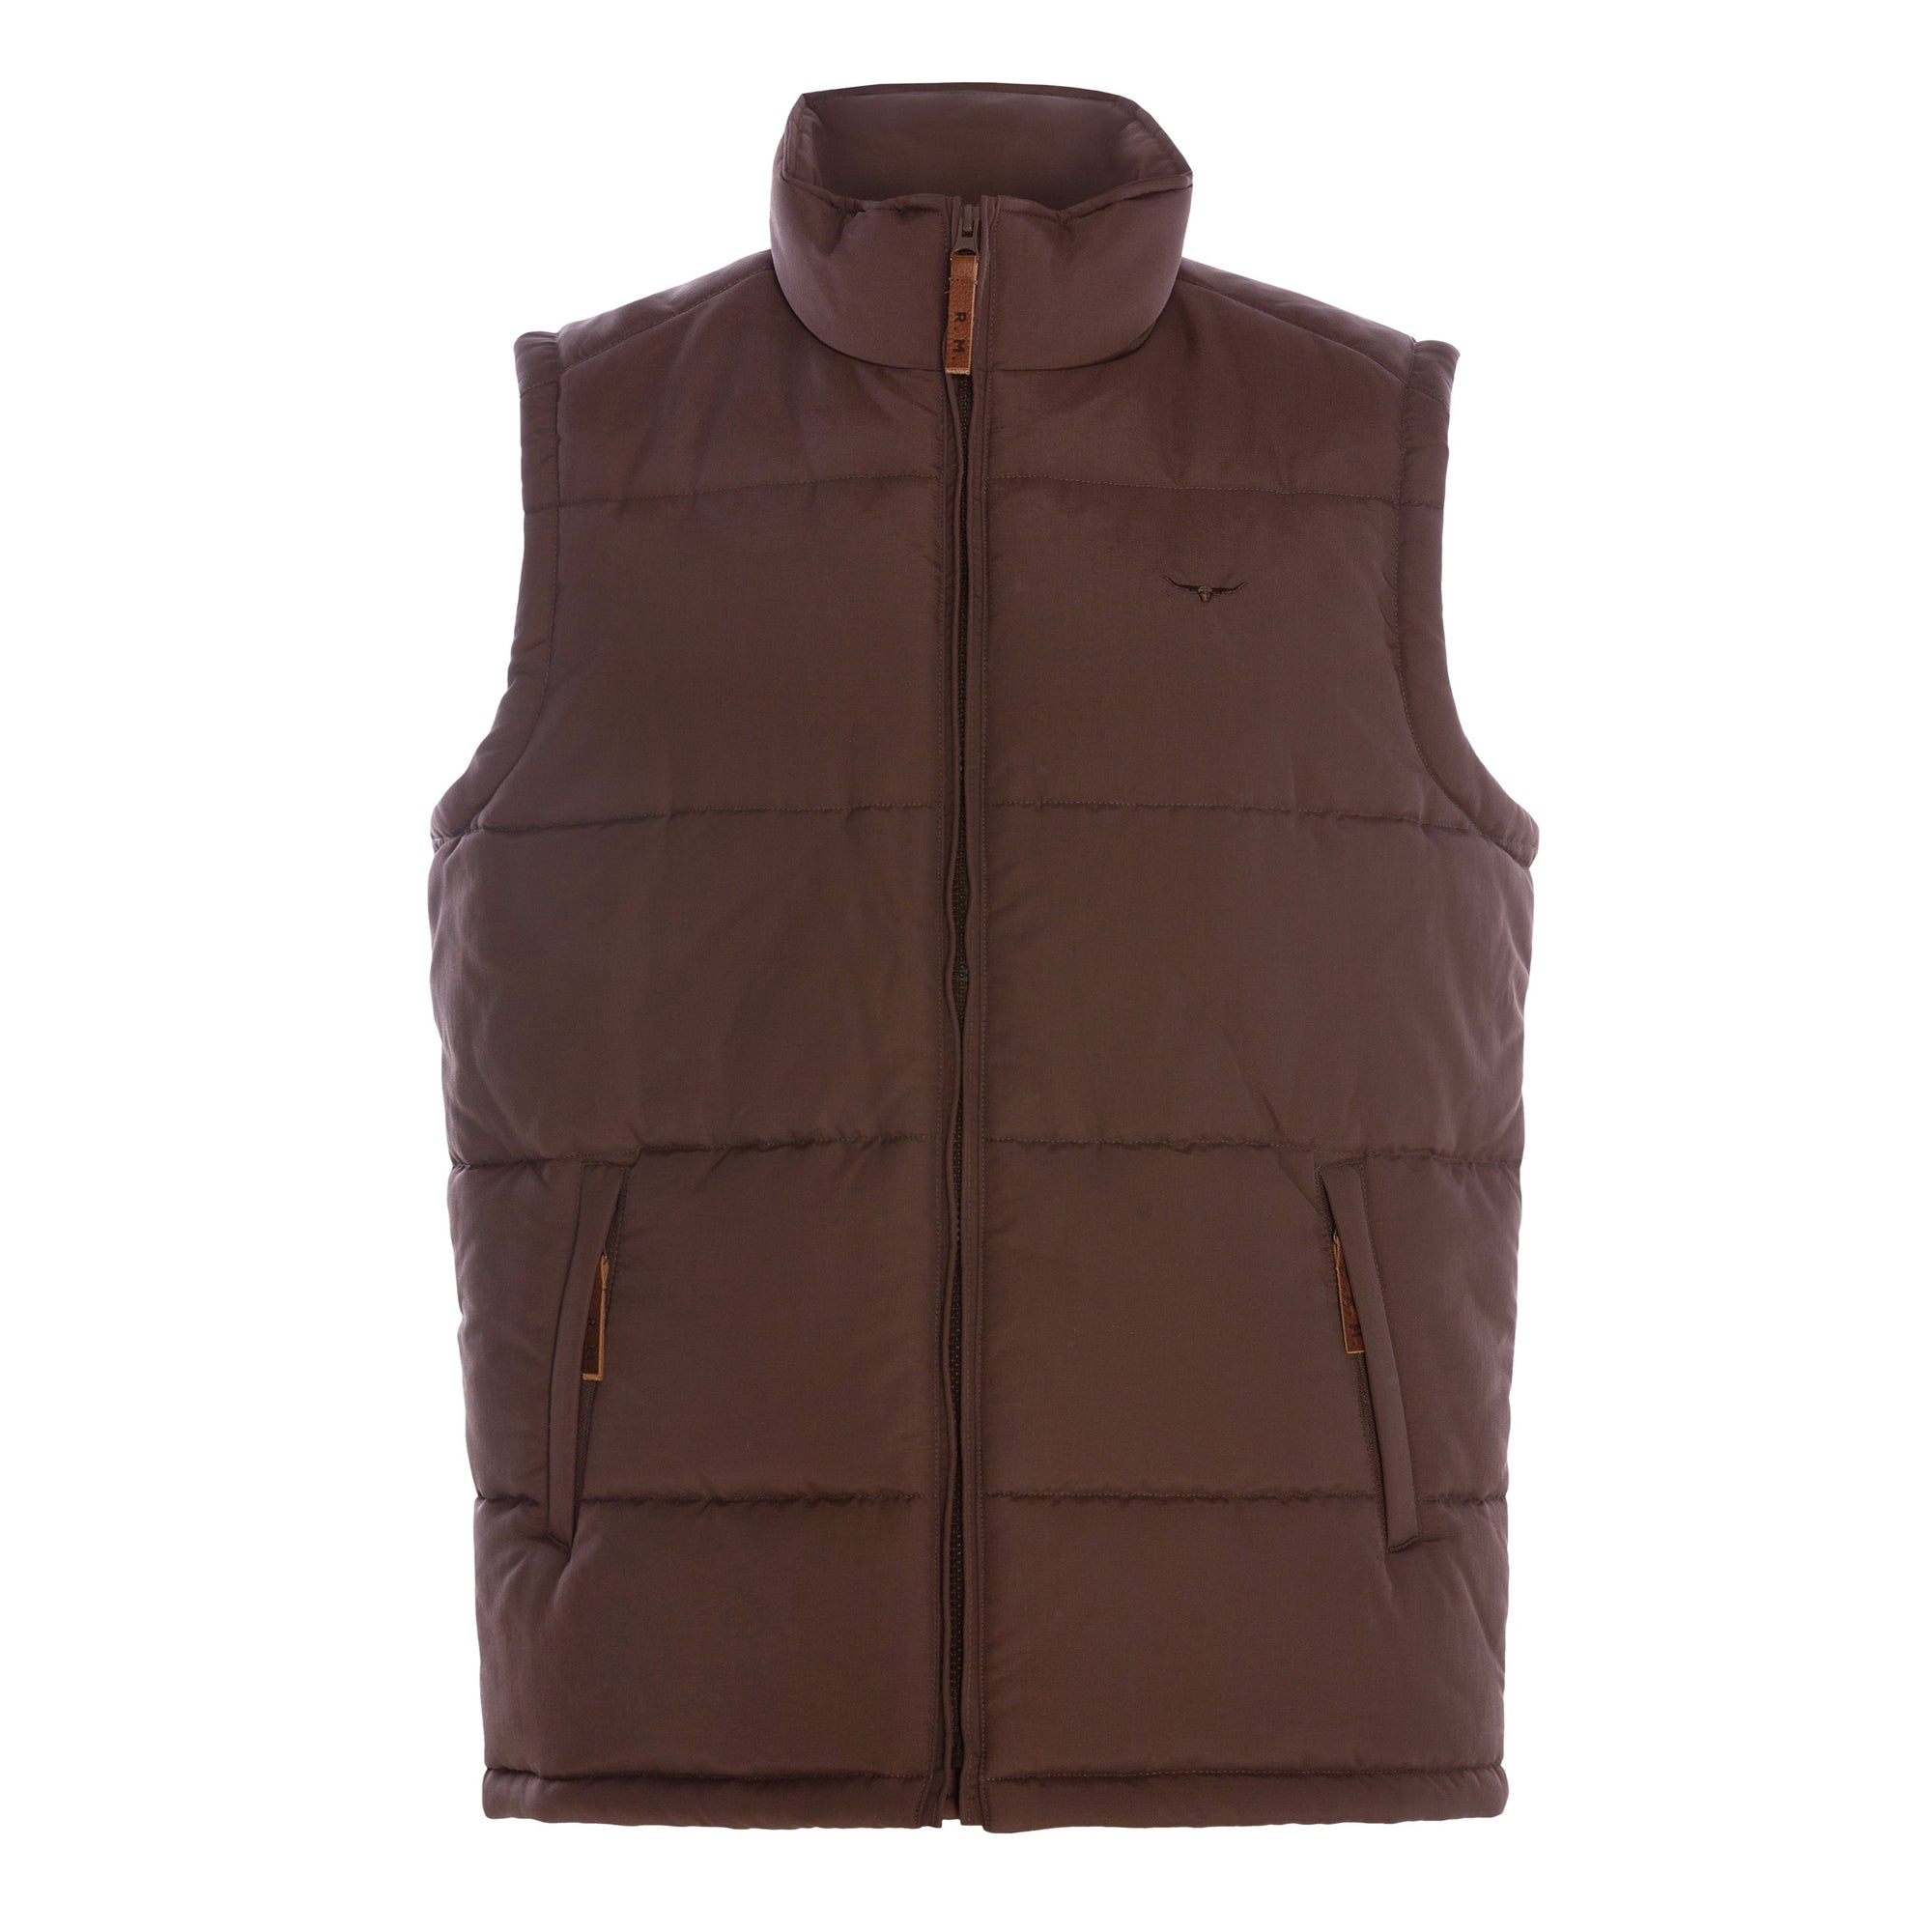 RMW Patterson Creek Vest